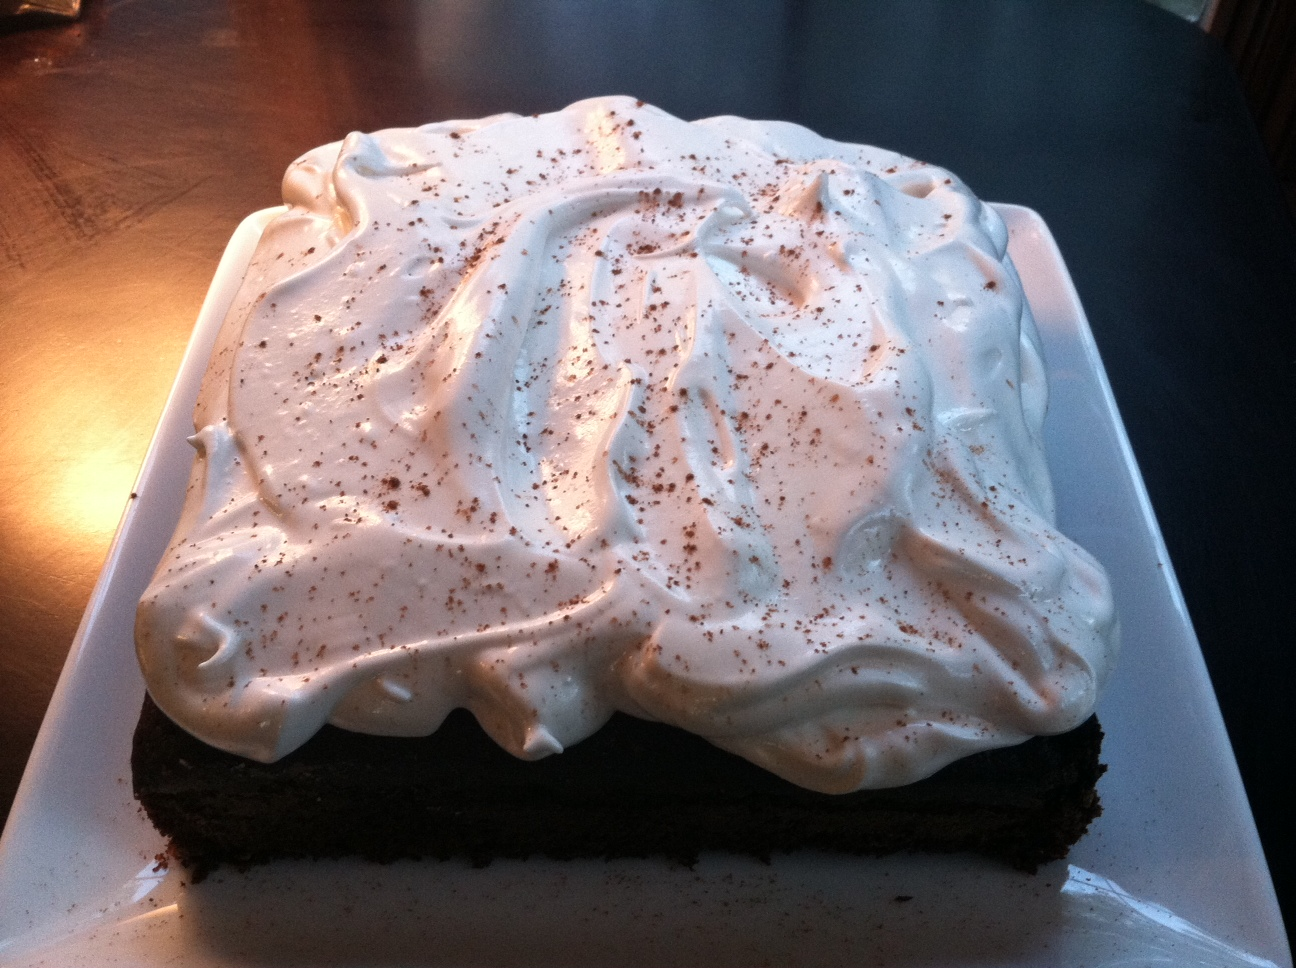 ... Gourmet Project: Devils Food Cake with Marshmallow Frosting (Page 743